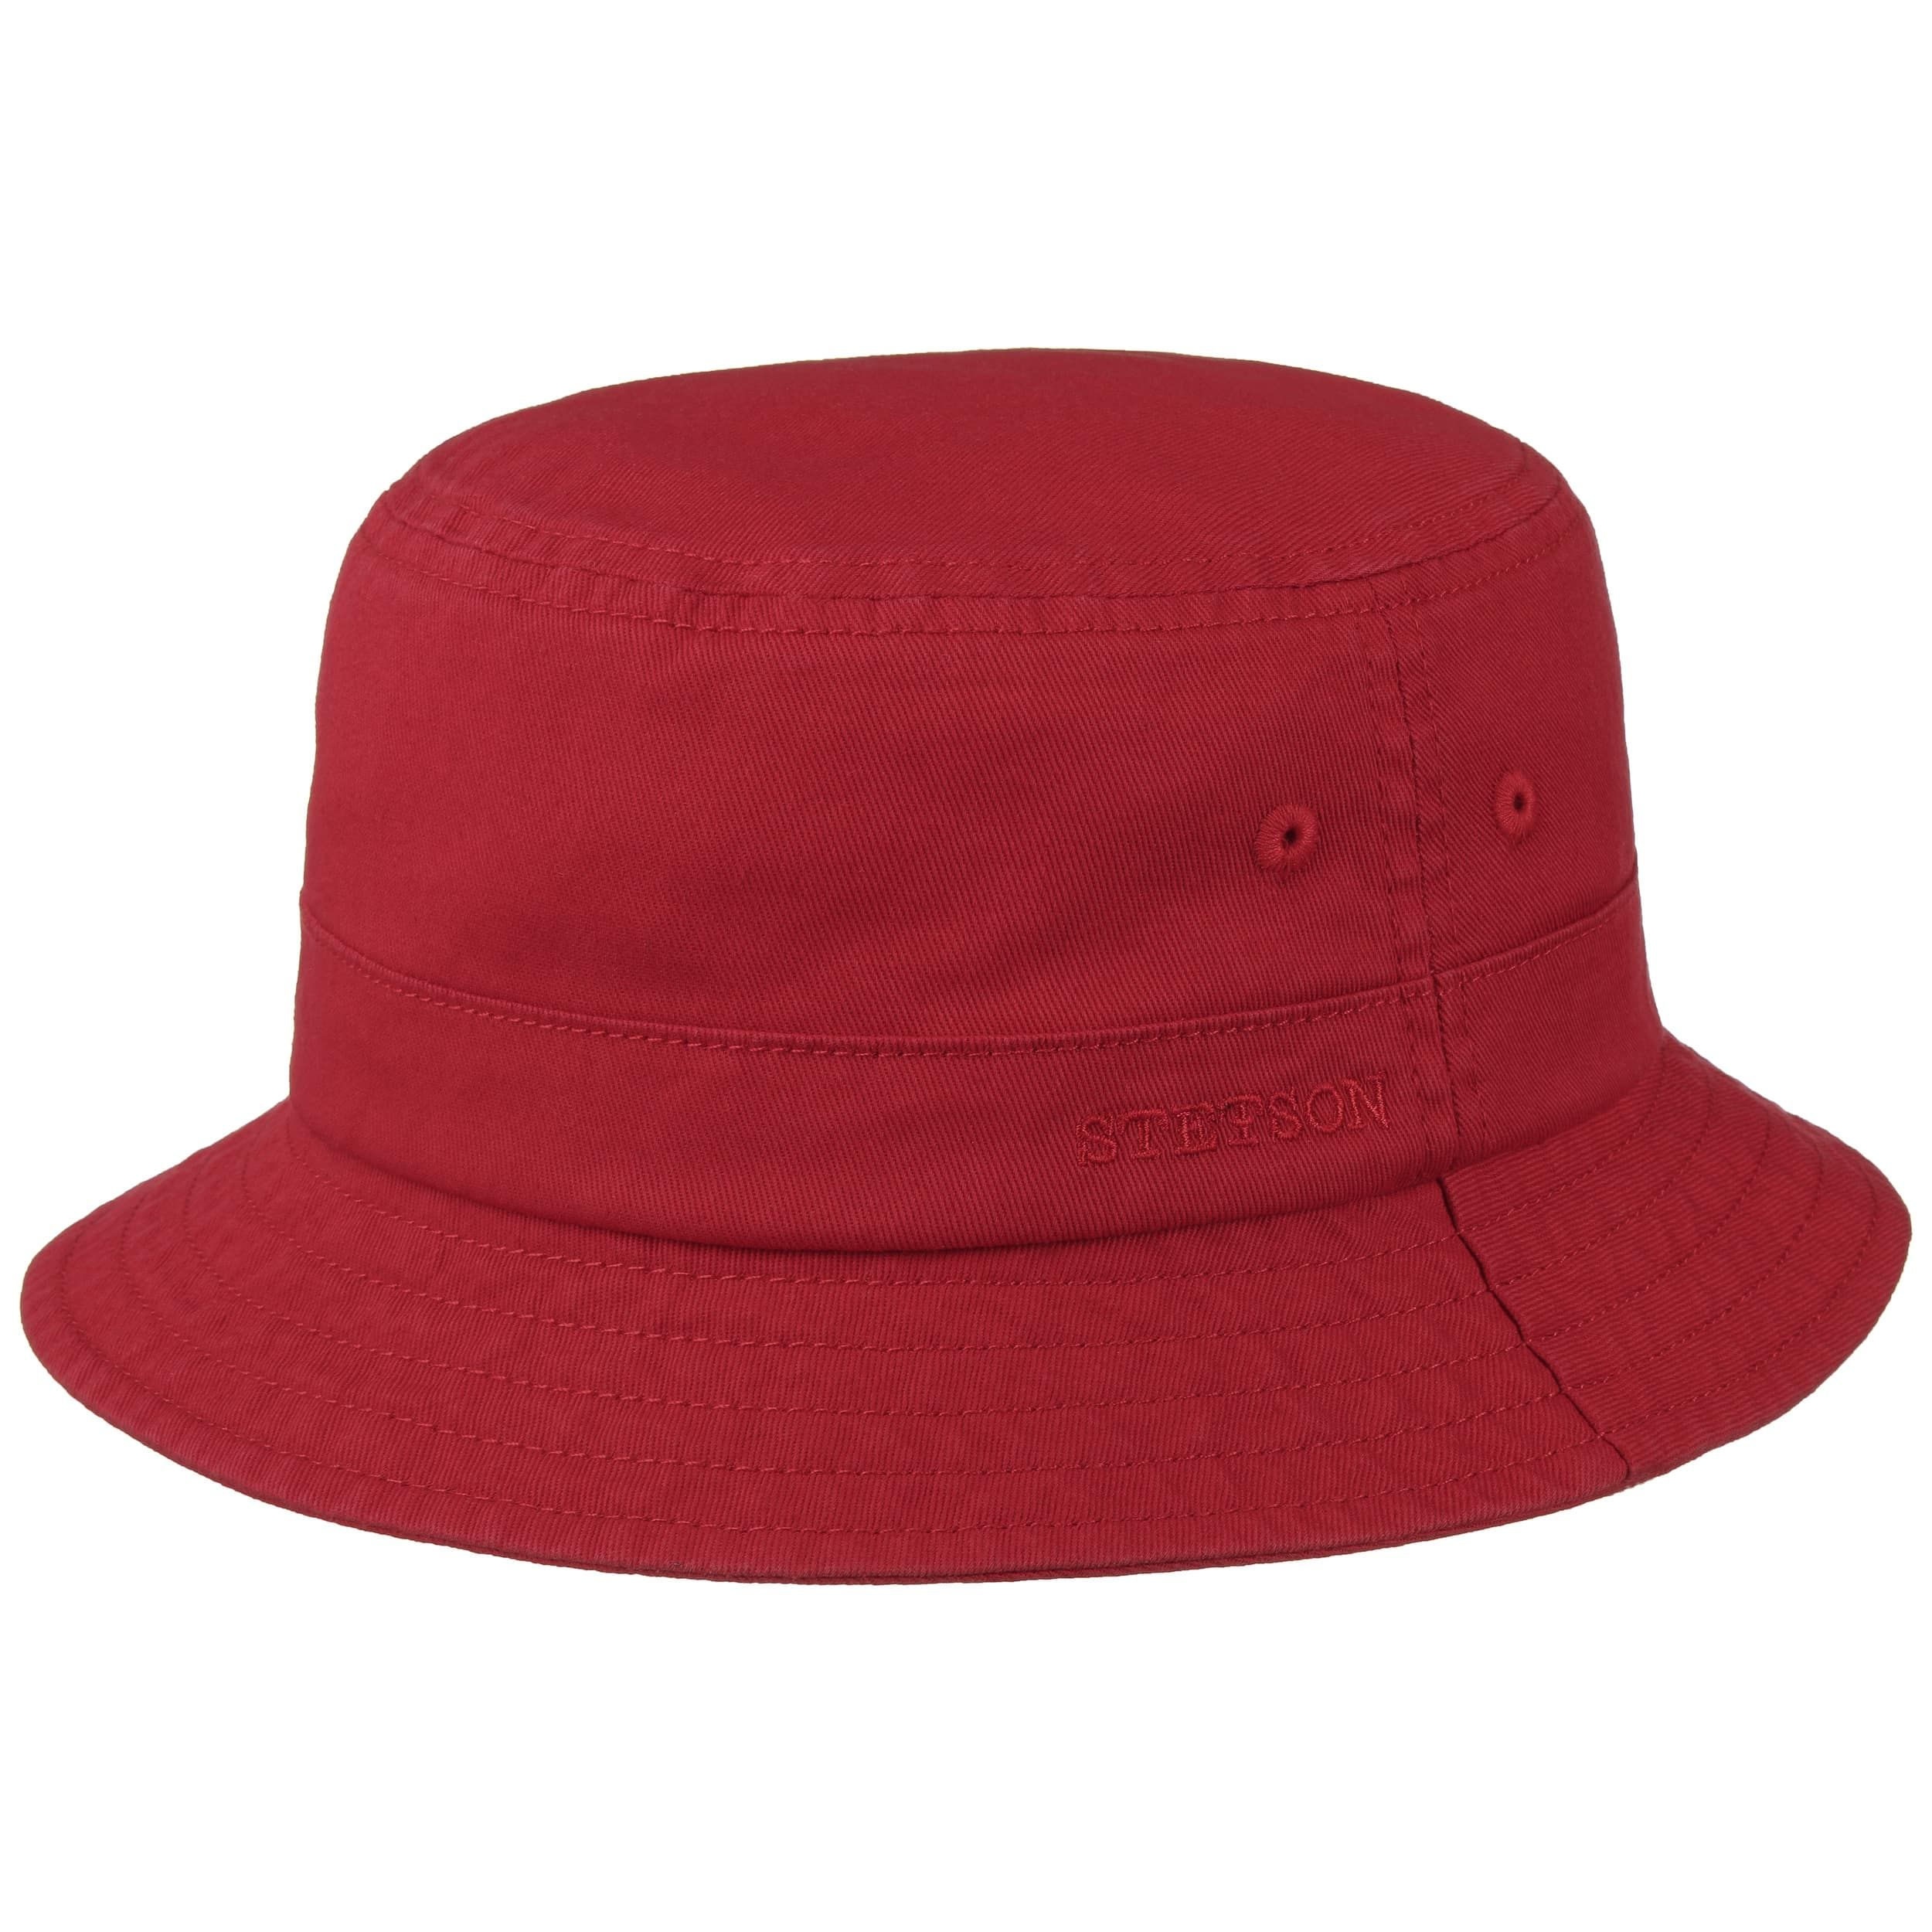 Organic Cotton Hat with UV Protection red